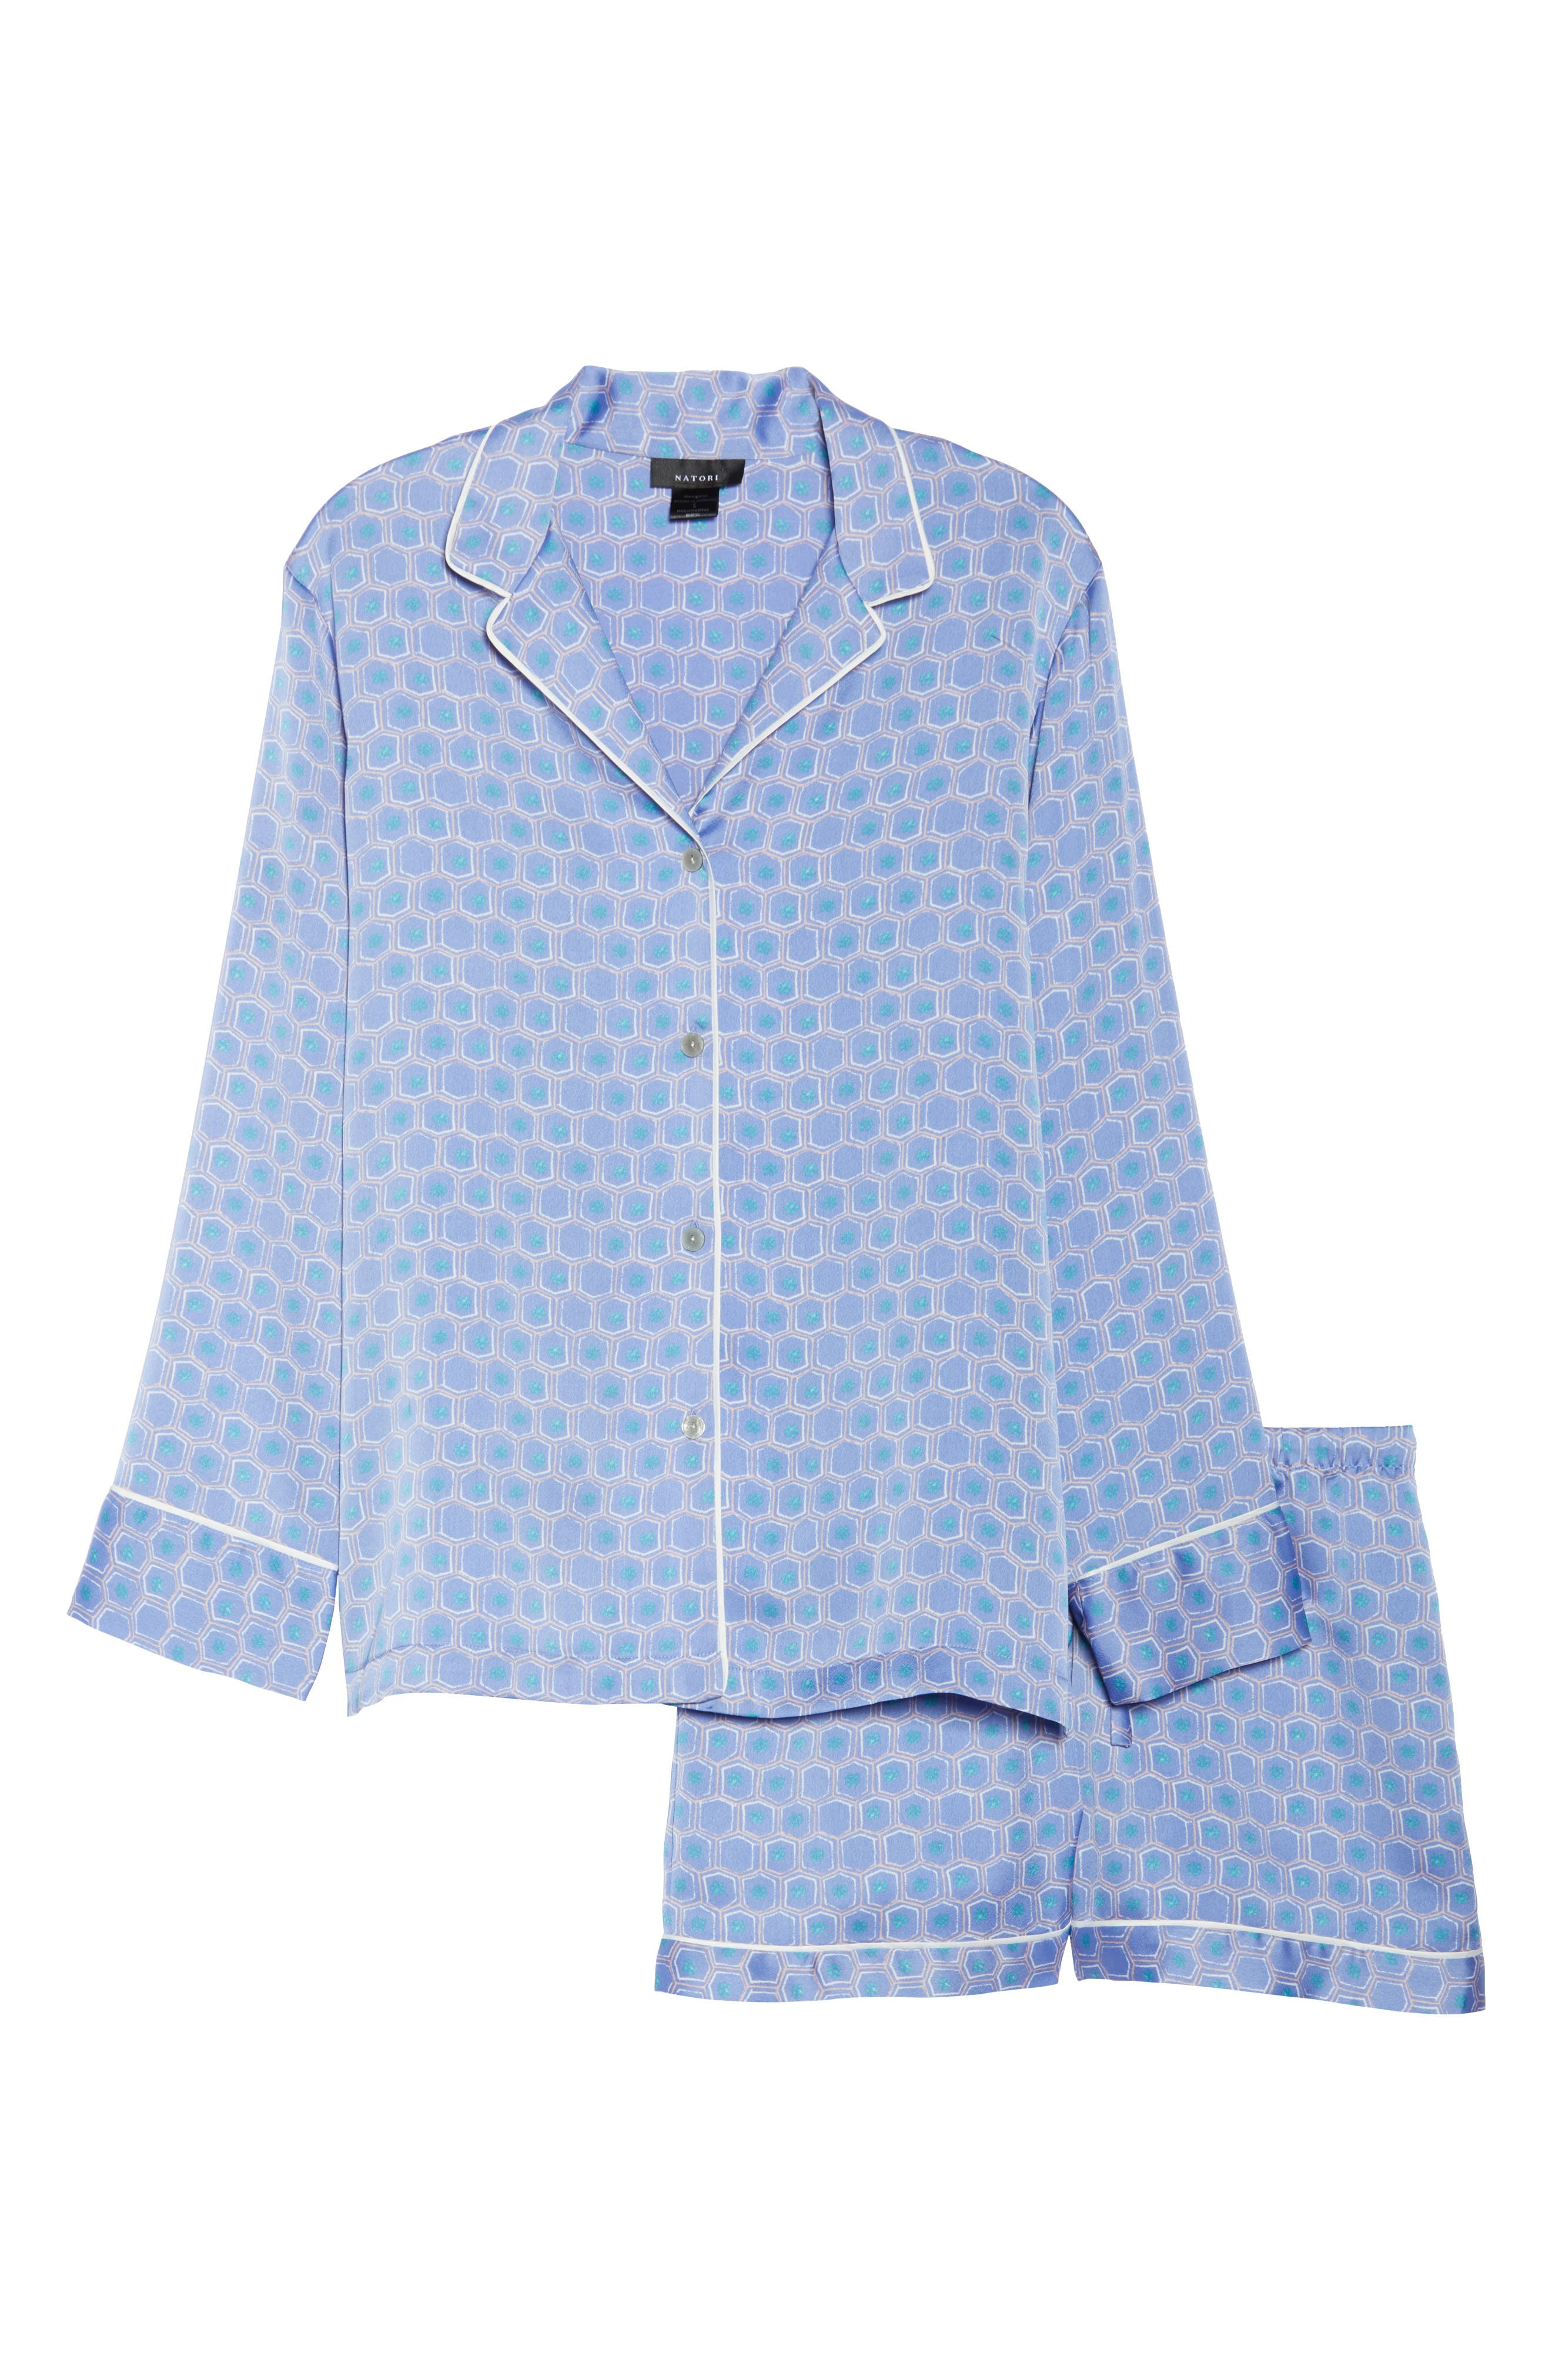 NATORI, Honeycomb Short Pajamas, Alternate thumbnail 6, color, WEDGEWOOD